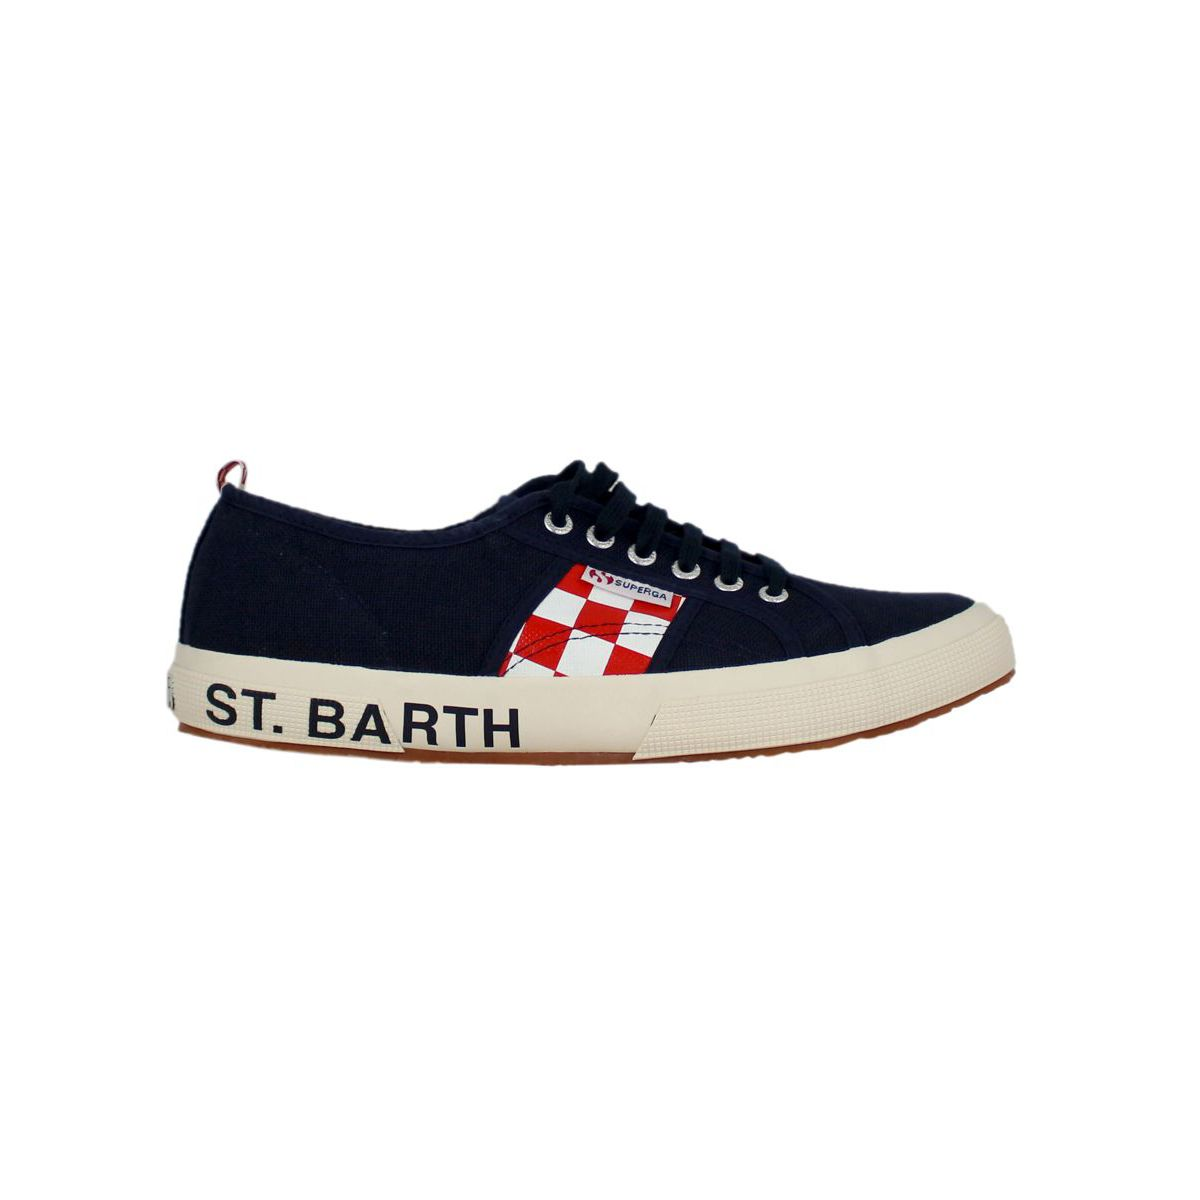 Sneakers in collaboration with St. Barth Navy MC2 SAINT BARTH